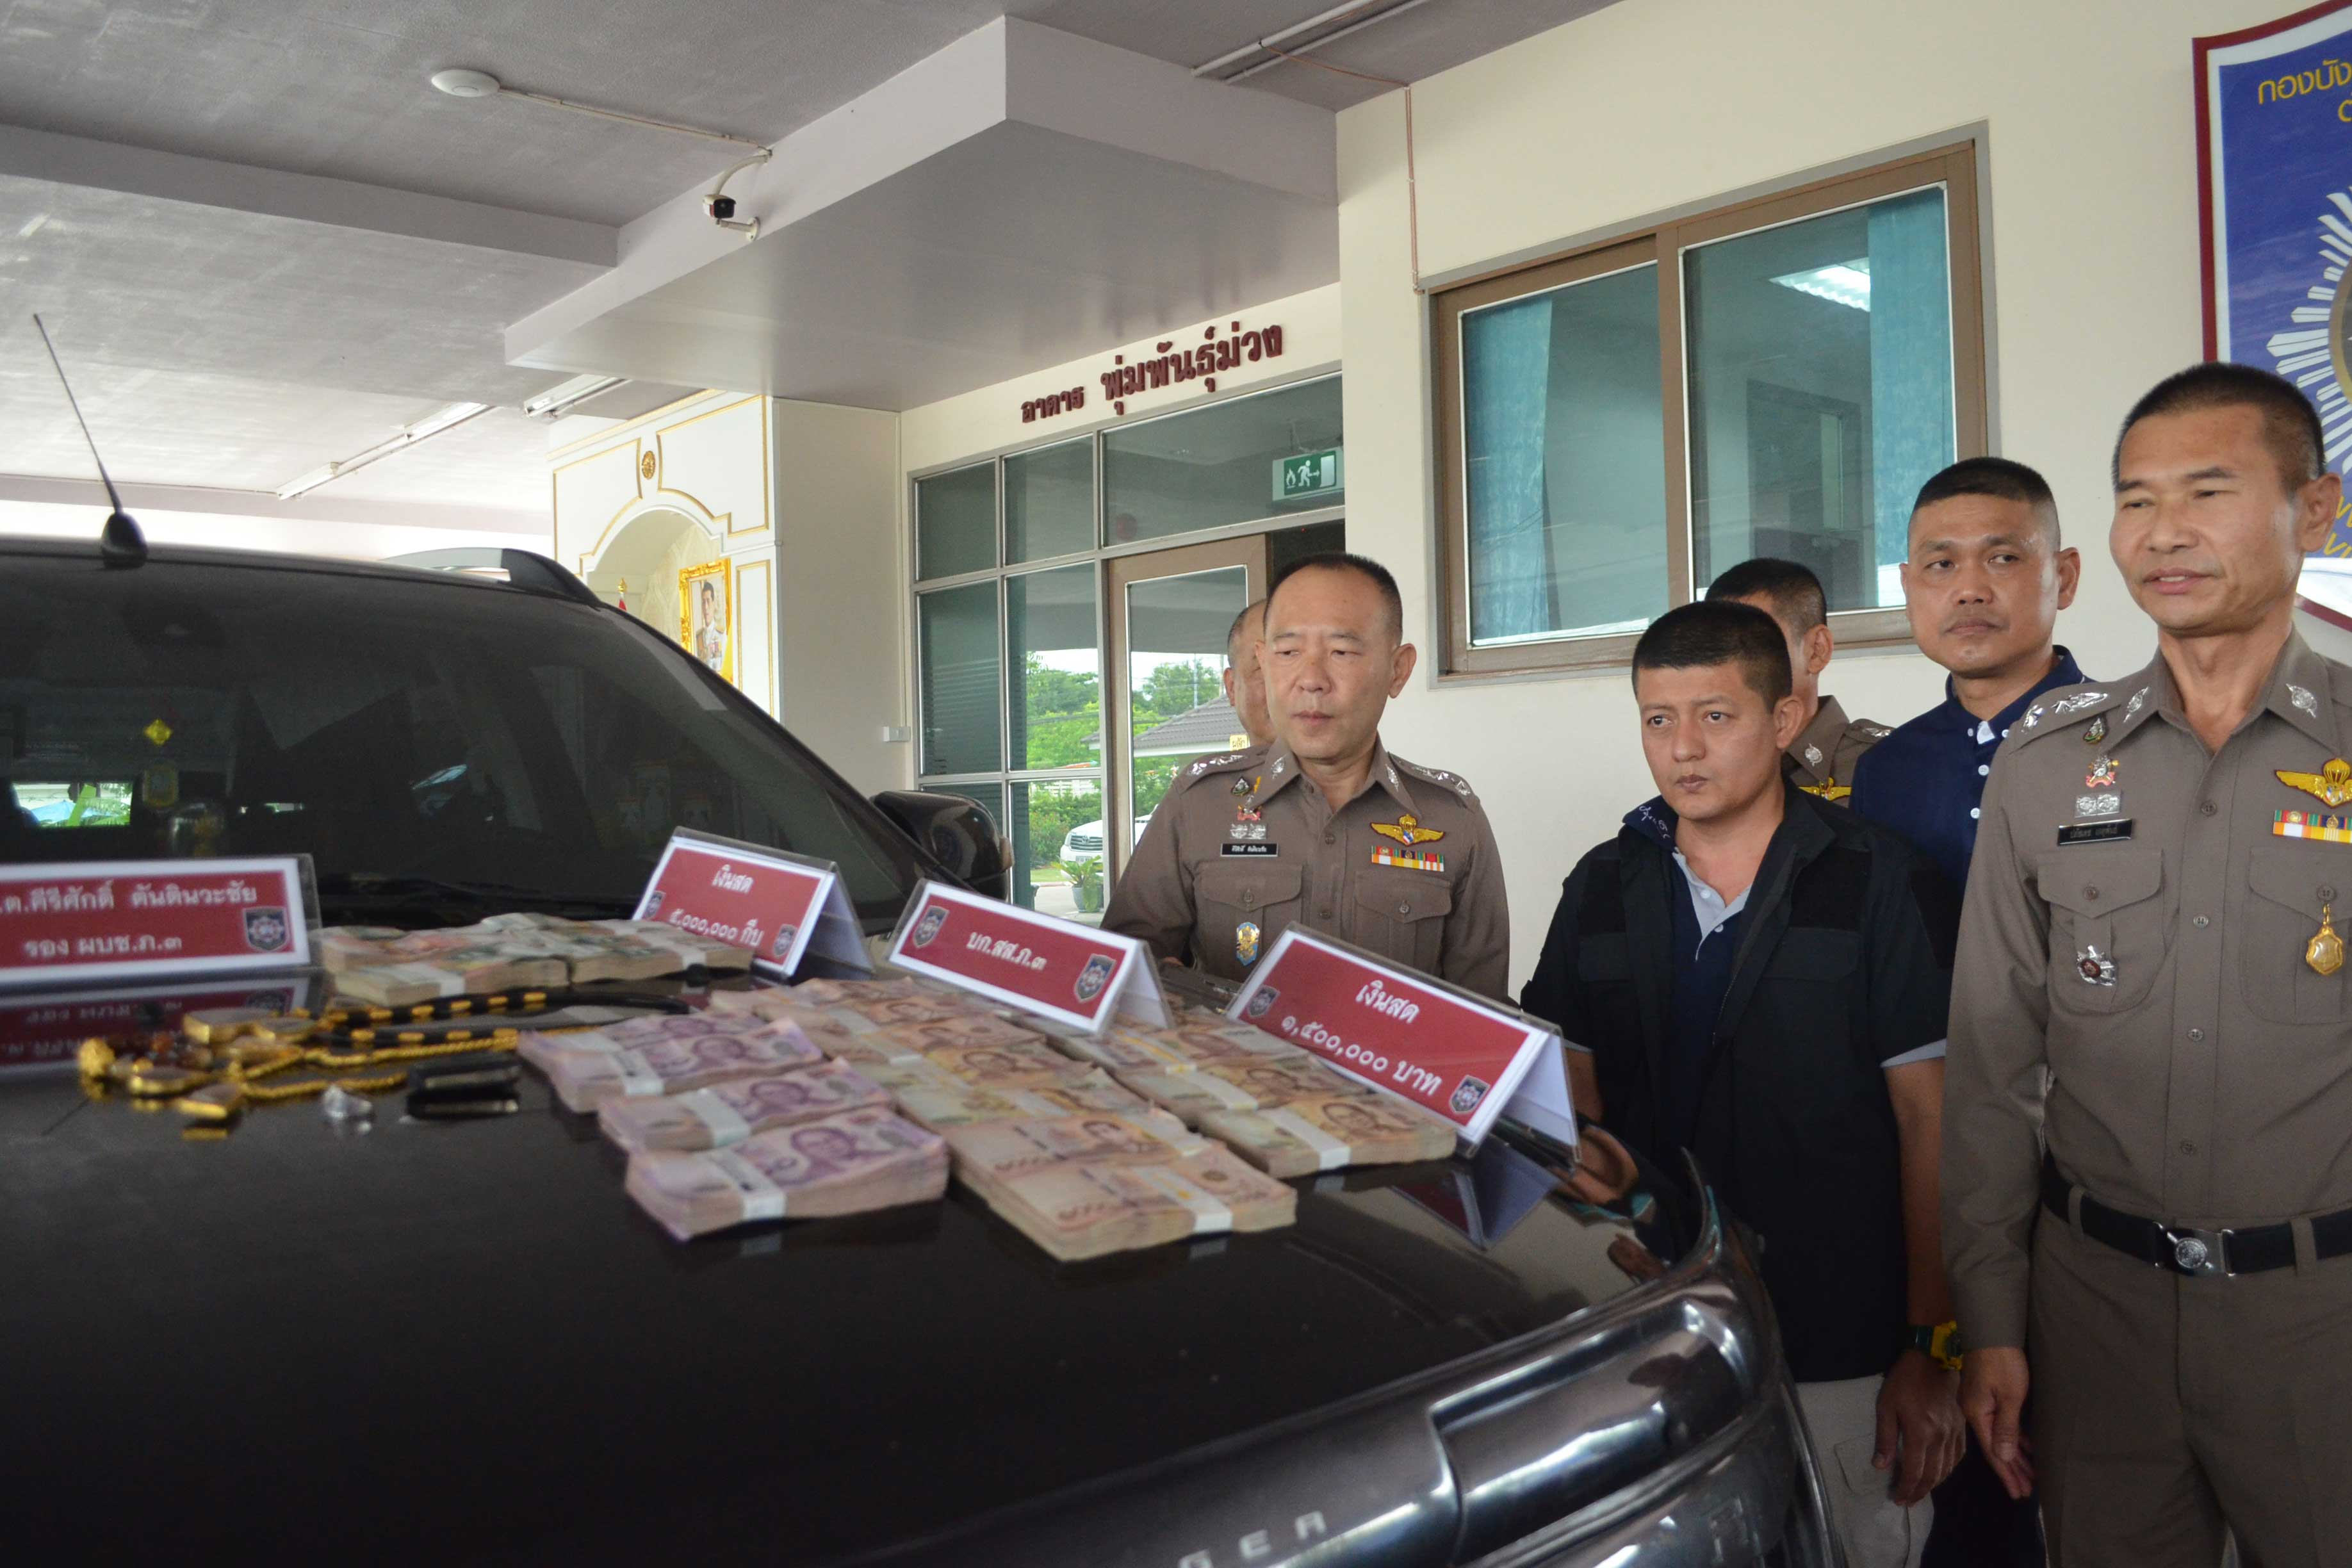 Police display money, a pickup truck and other valuables seized from an alleged money-launderer for a Laos drug network, at Provincial Police Region 3 in Nakhon Ratchasima on Thursday. (Photo by Prasit Tangprasert)